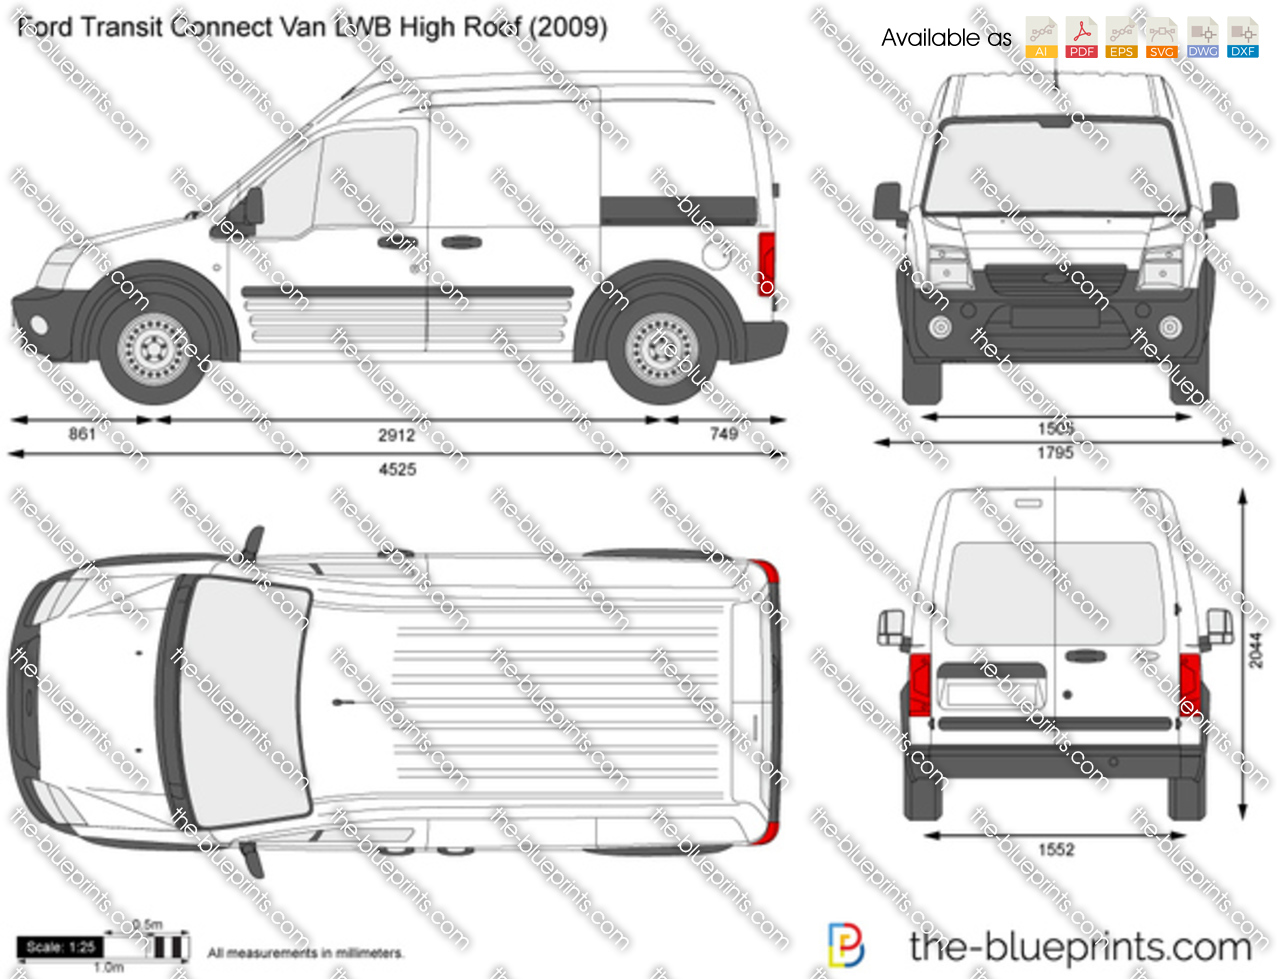 Ford Transit Connect Van LWB High Roof 2013